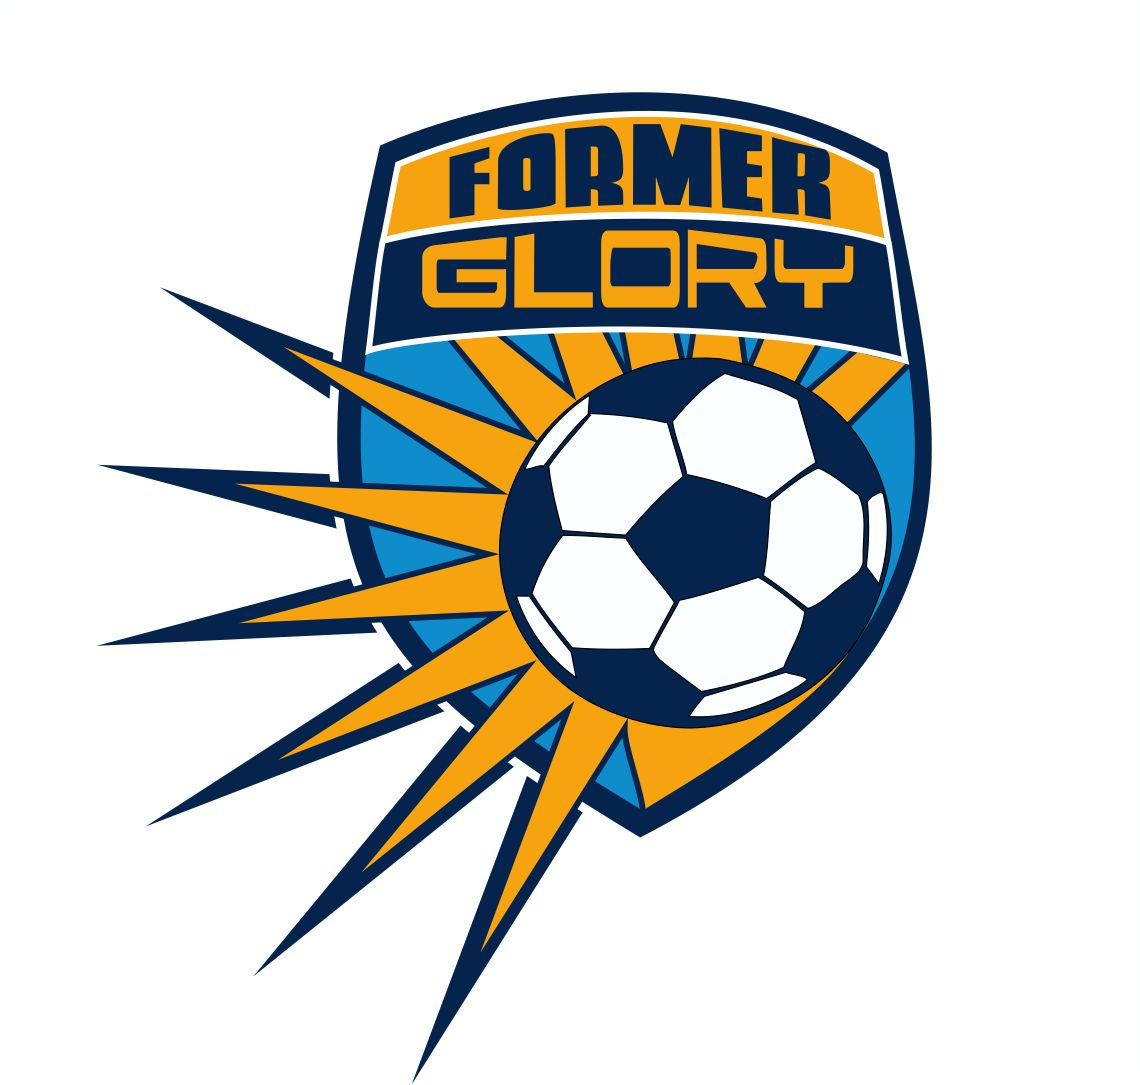 MASTERS-FORMER.GLORY